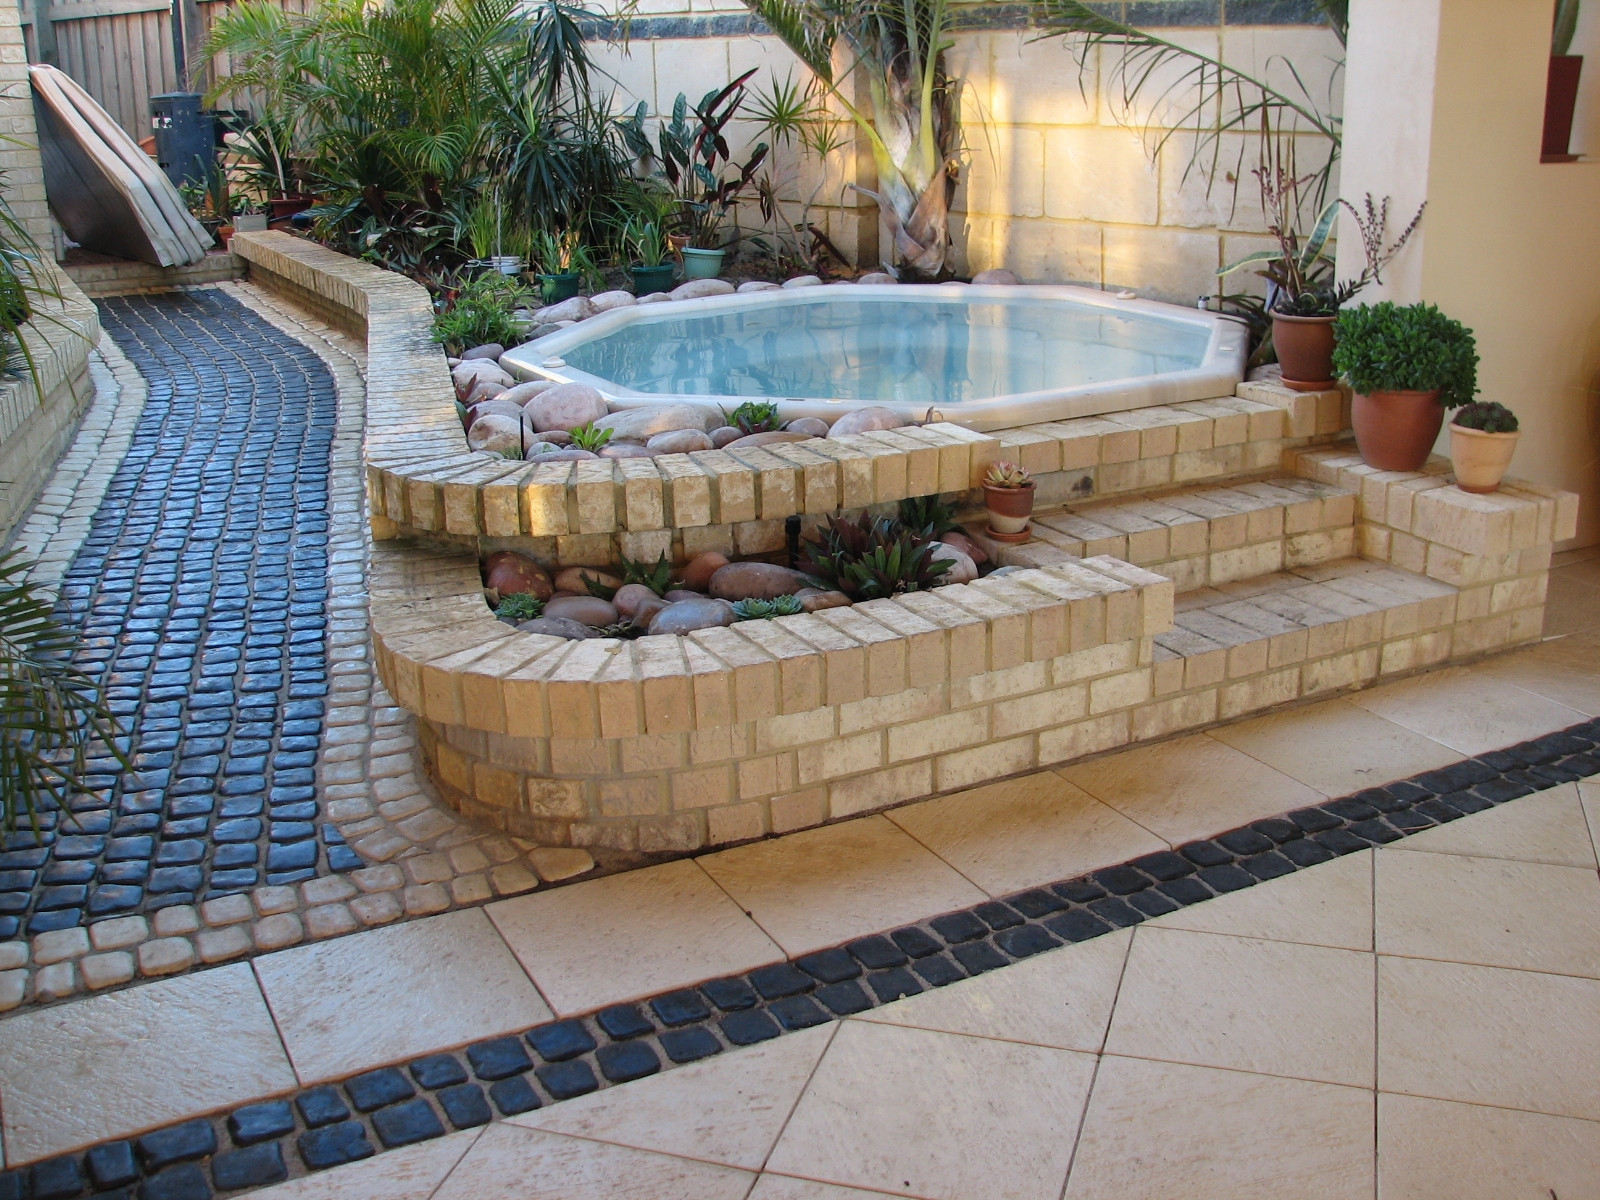 Outdoor Landscape Pavers  Patio Pavers And Patio Paving Ideas & Designs For Your